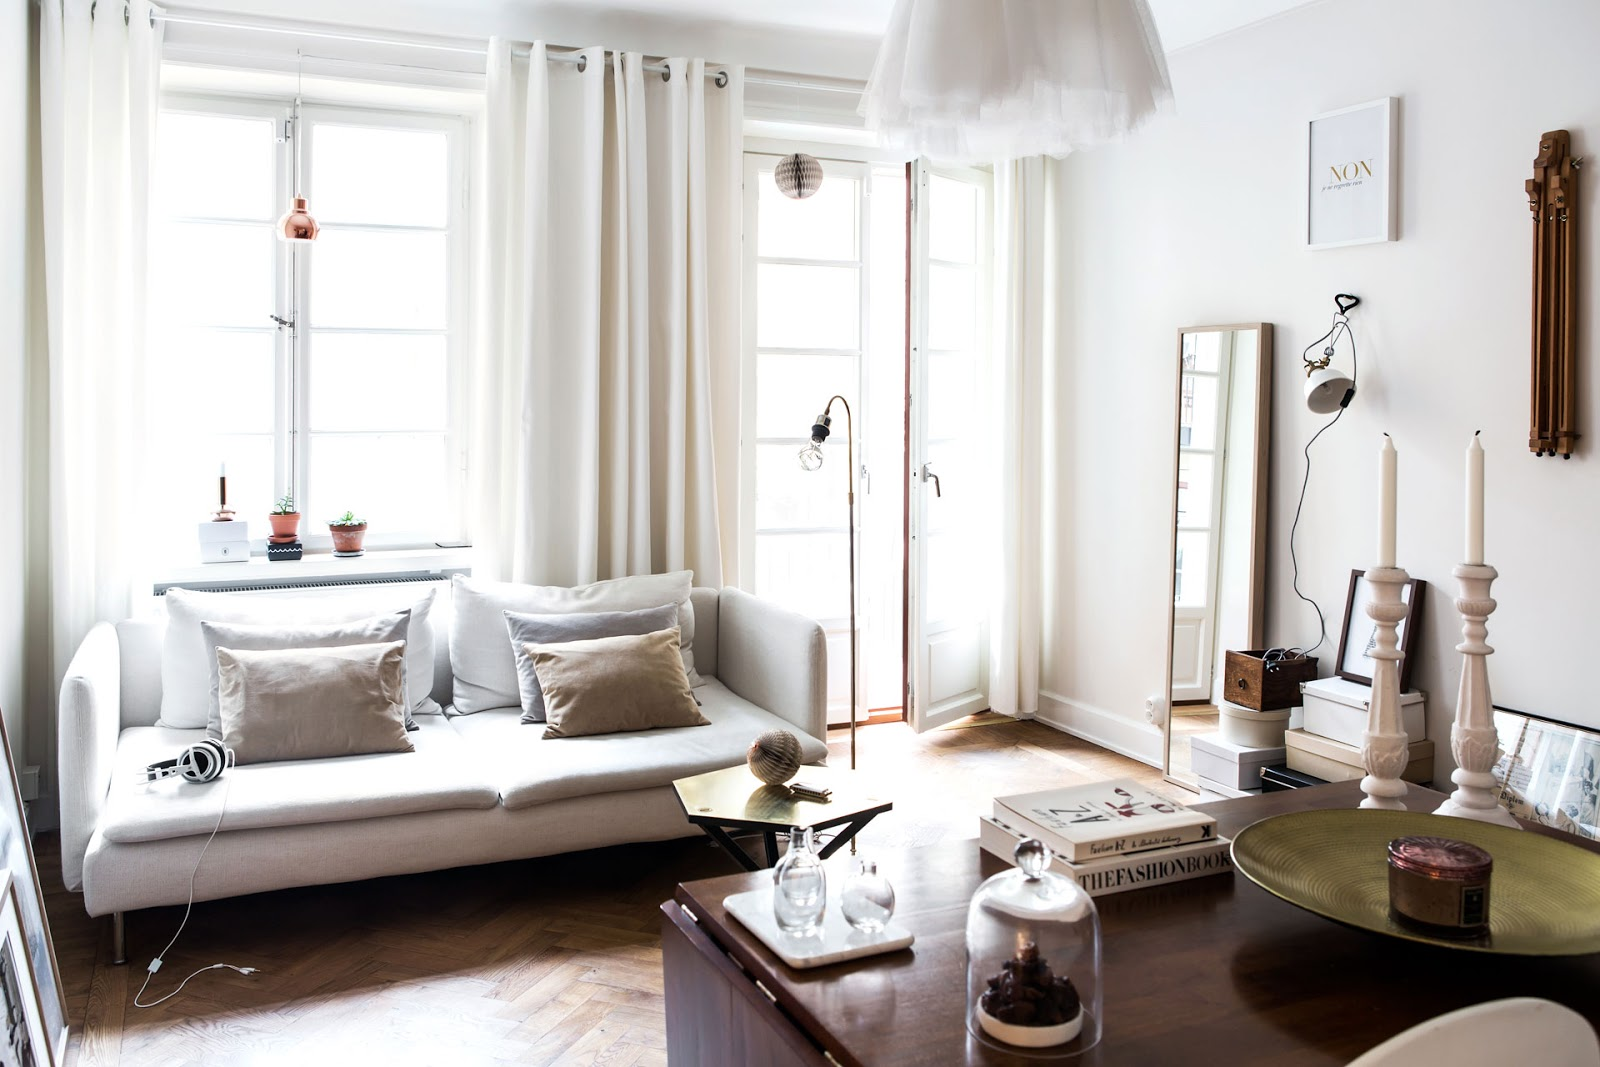 500 SQUARE FEET OF BEIGE - APARTMENT STYLE